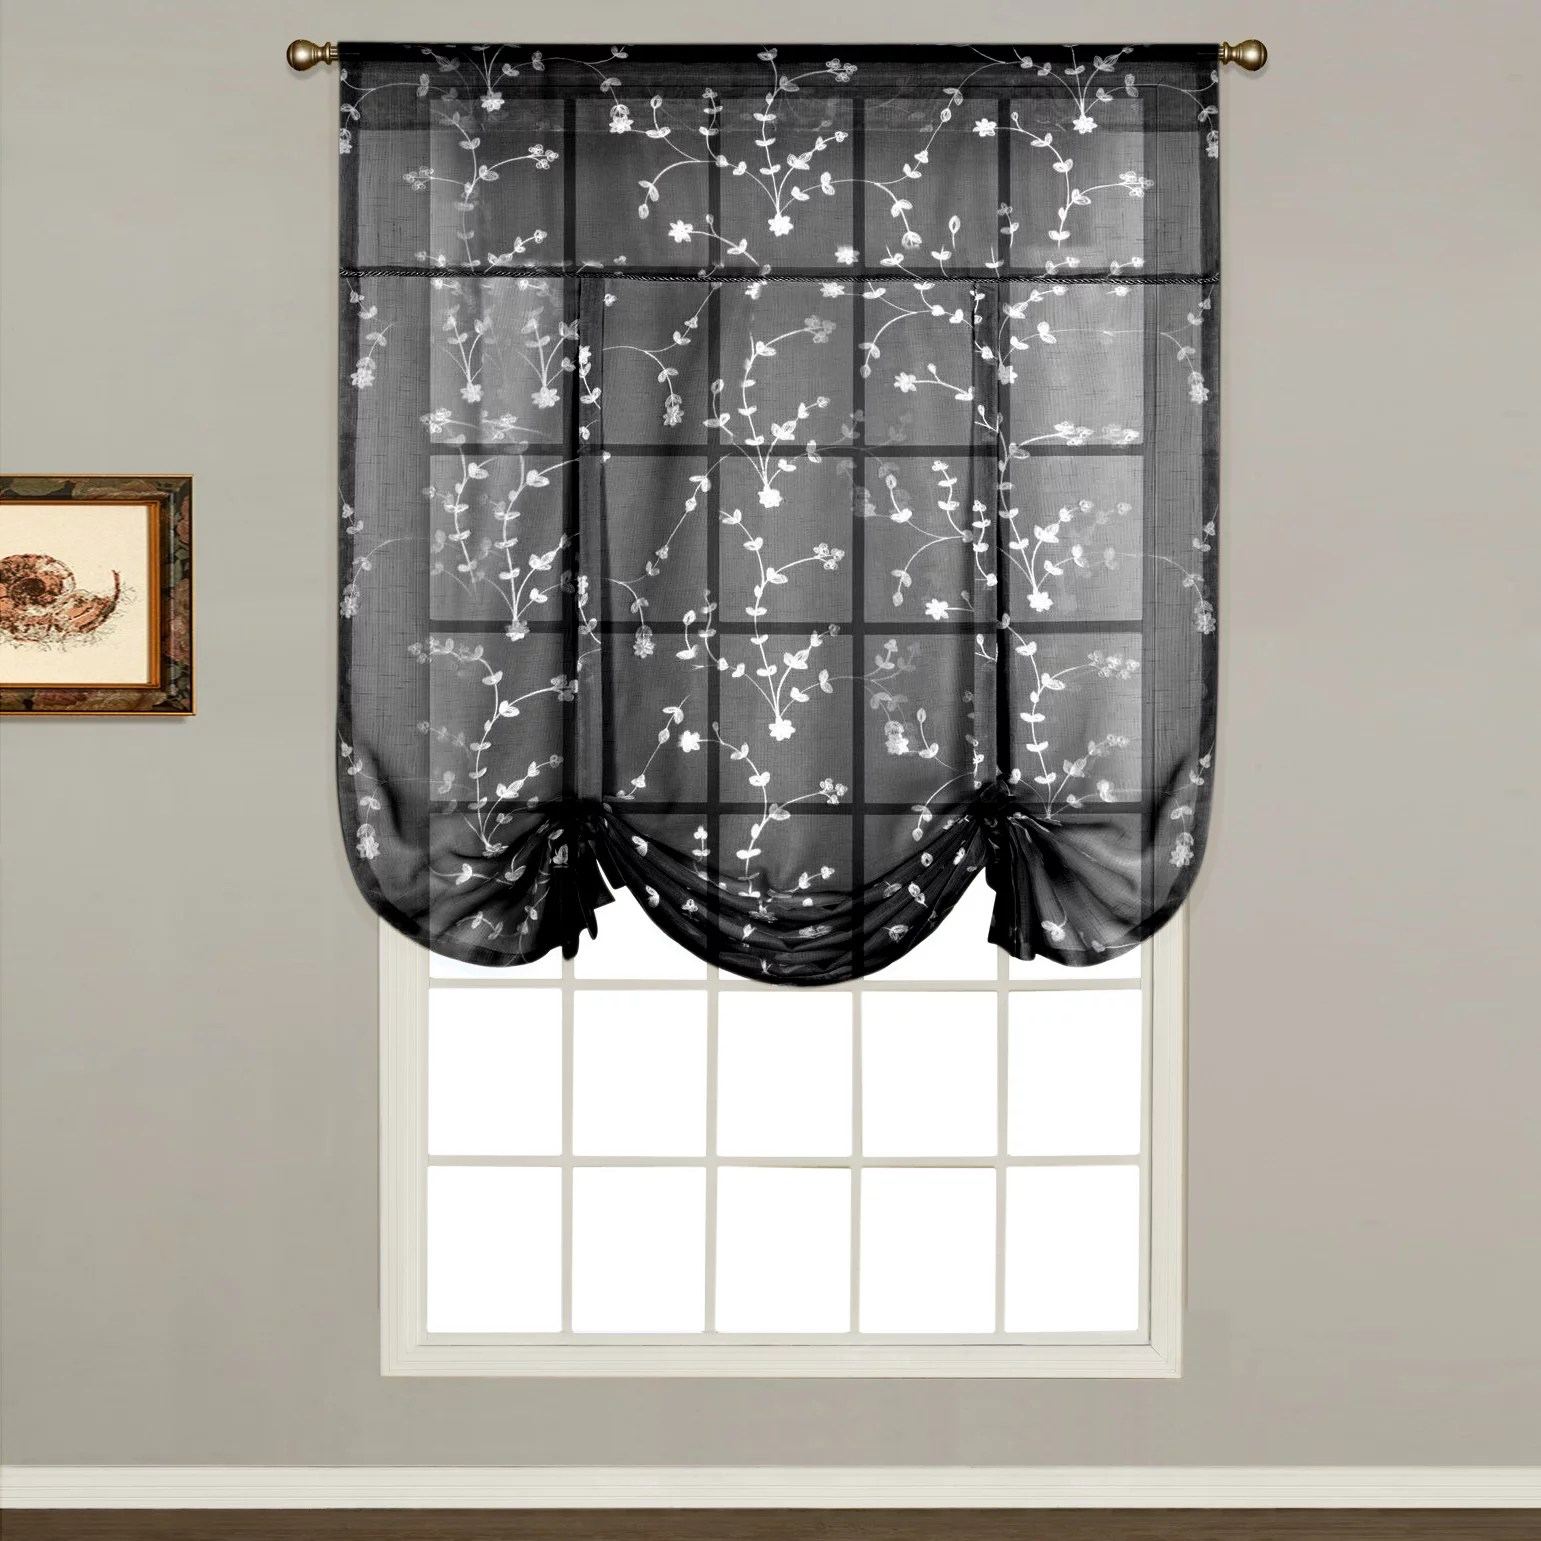 kitchen curtains kohls sink drain catcher black drapes window treatments home decor kohl s united curtain co savannah tie up shade 40 x 63